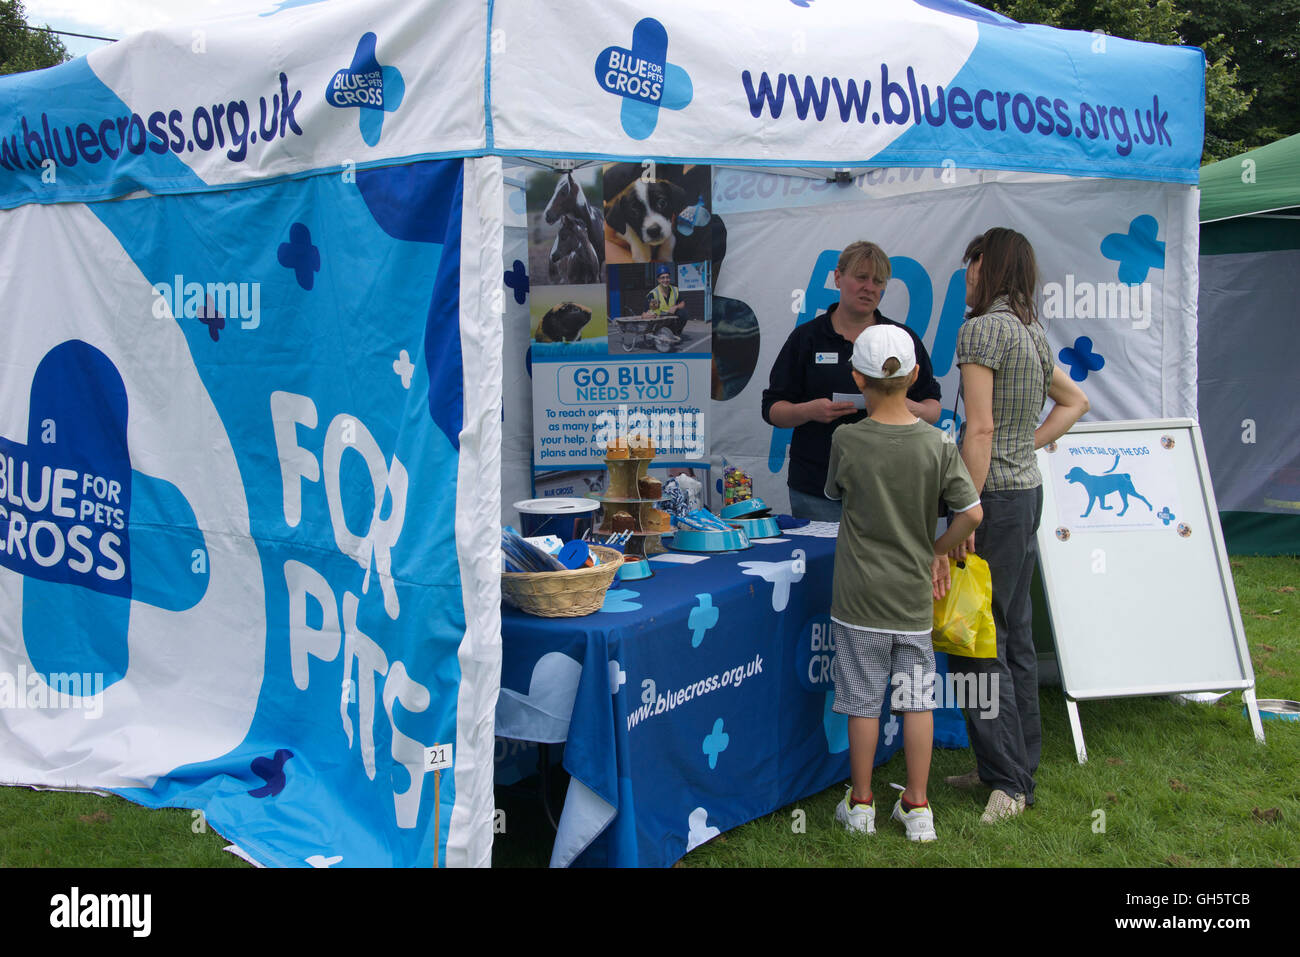 Tent at a pets' charity event, Oxfordshire, UK - Stock Image